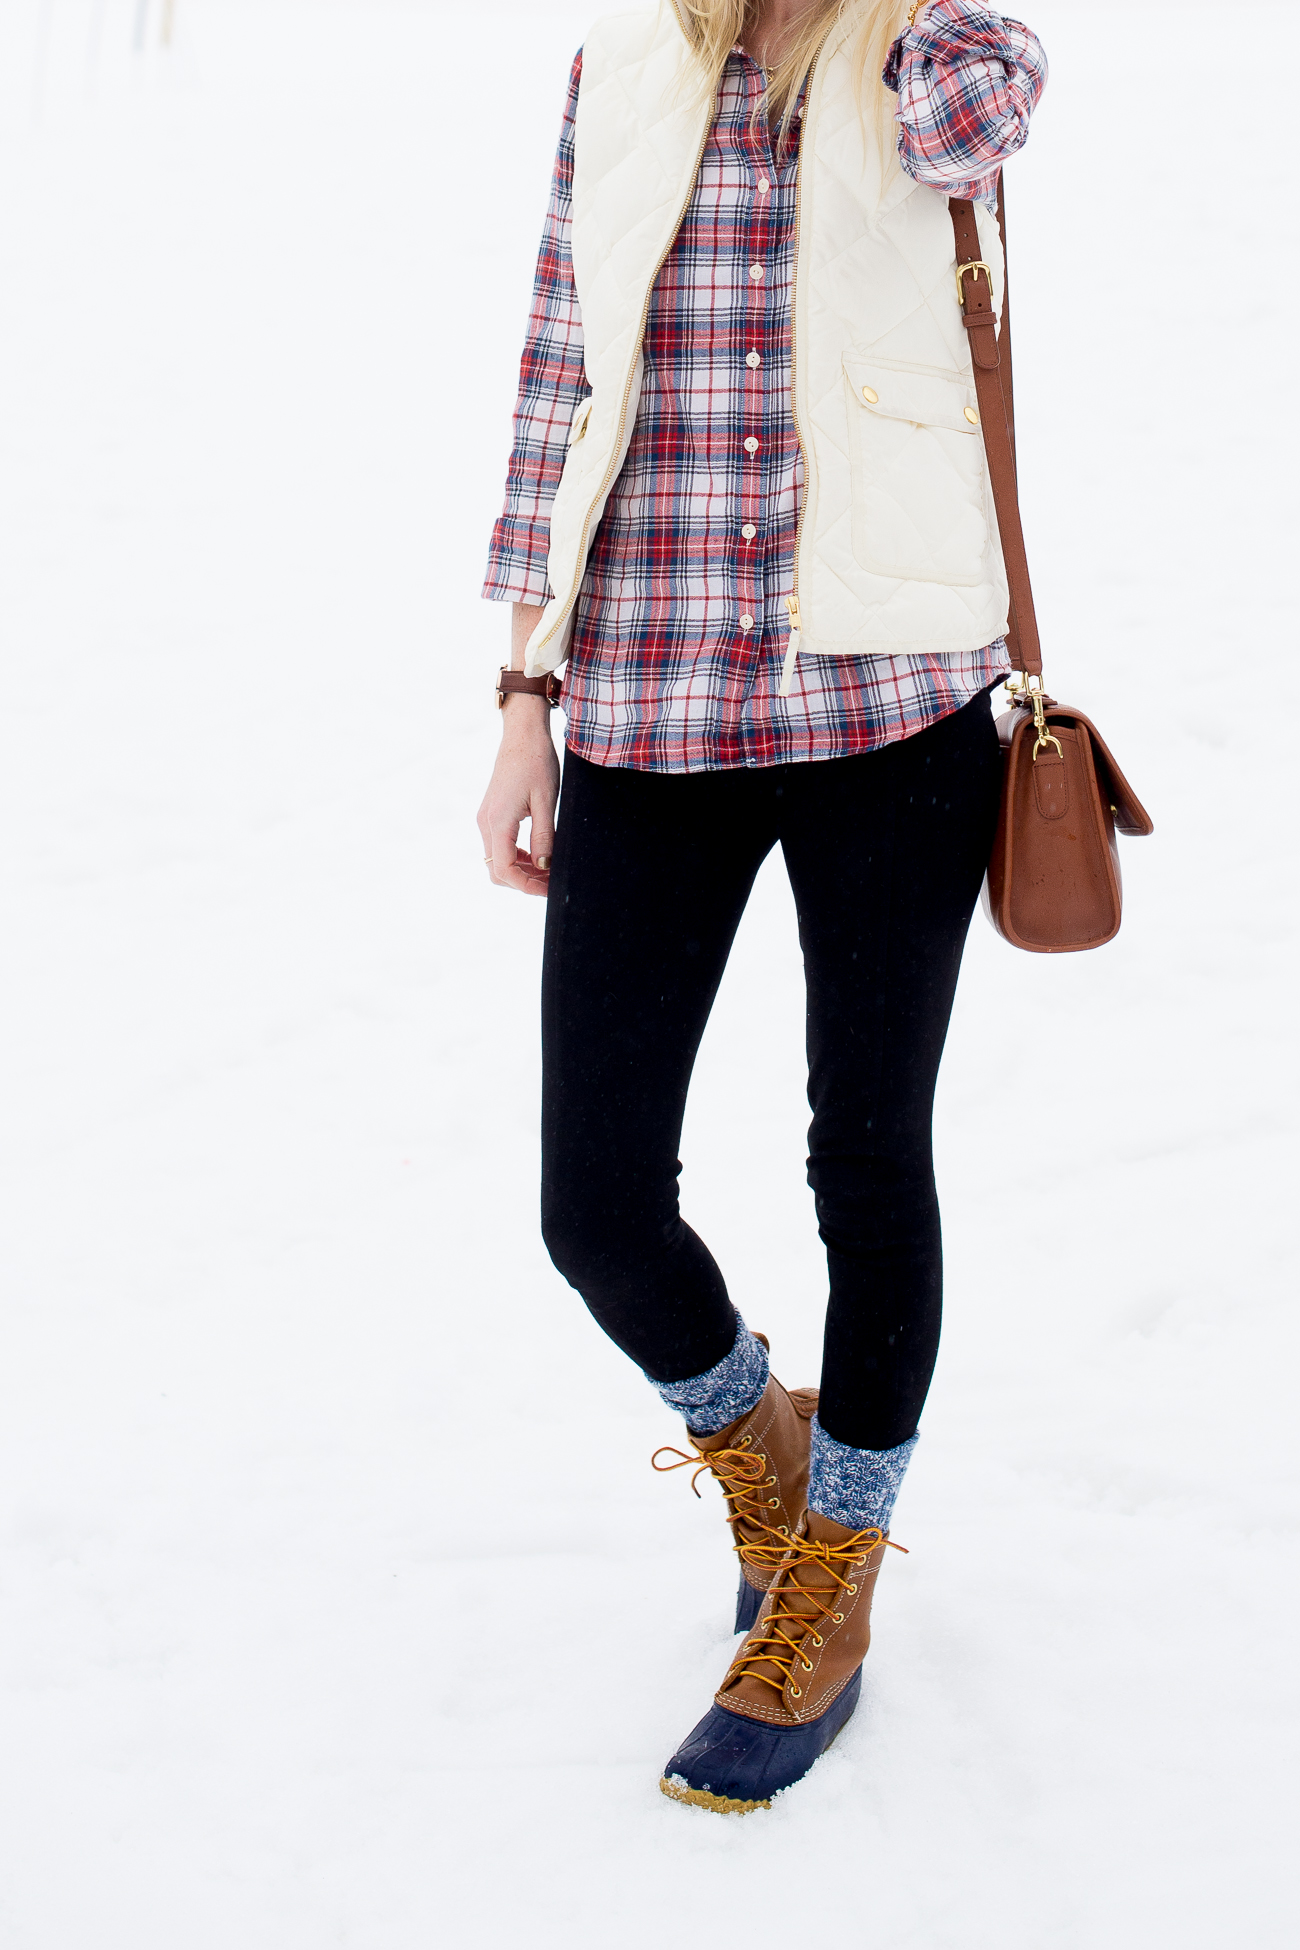 J.Crew-Excursion-Vest-LL-Bean-Boots-48